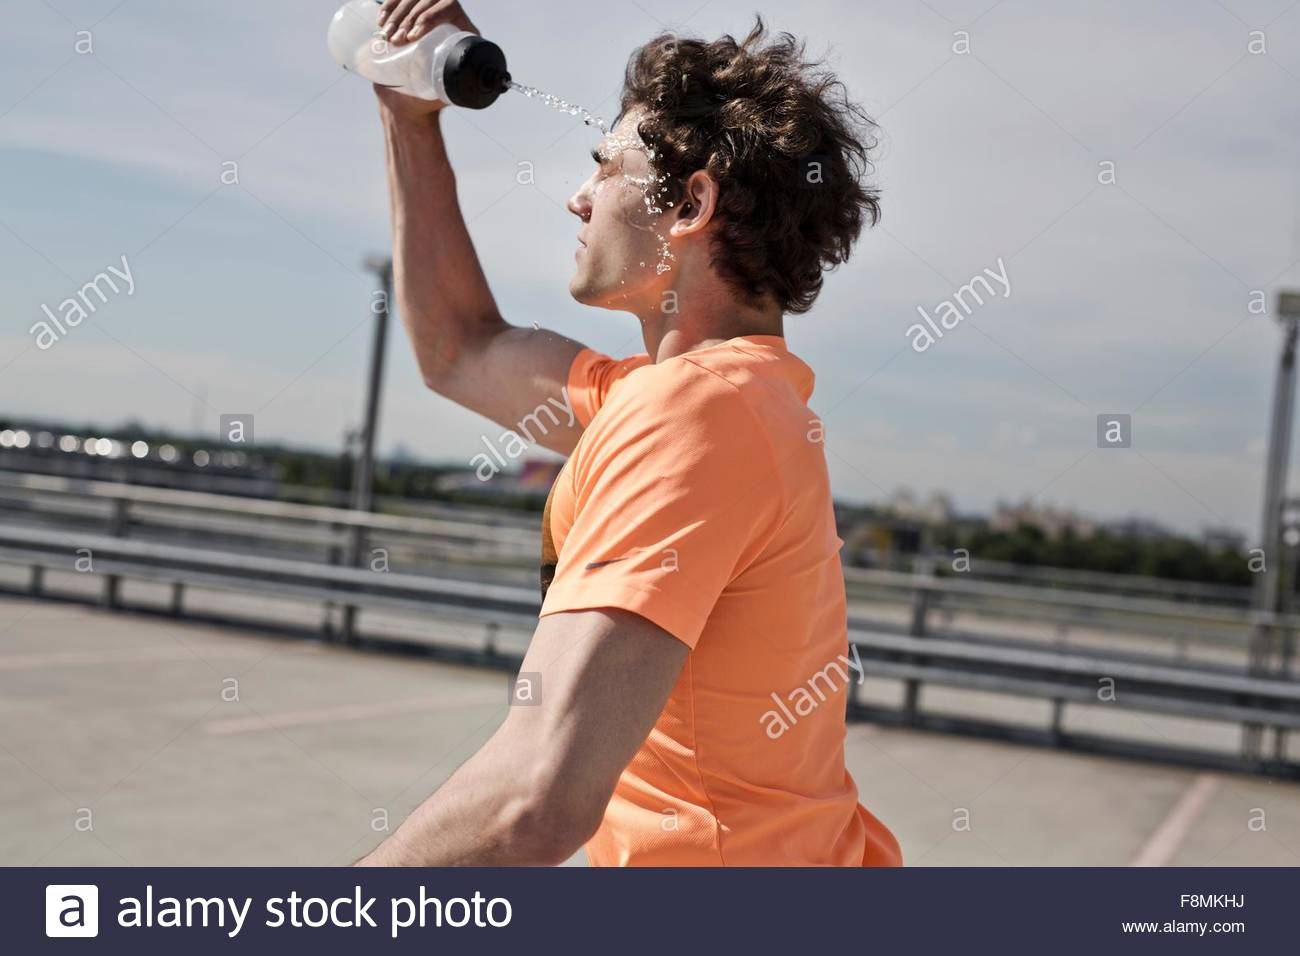 Young male runner pouring water on his face whilst running in city - Stock Image